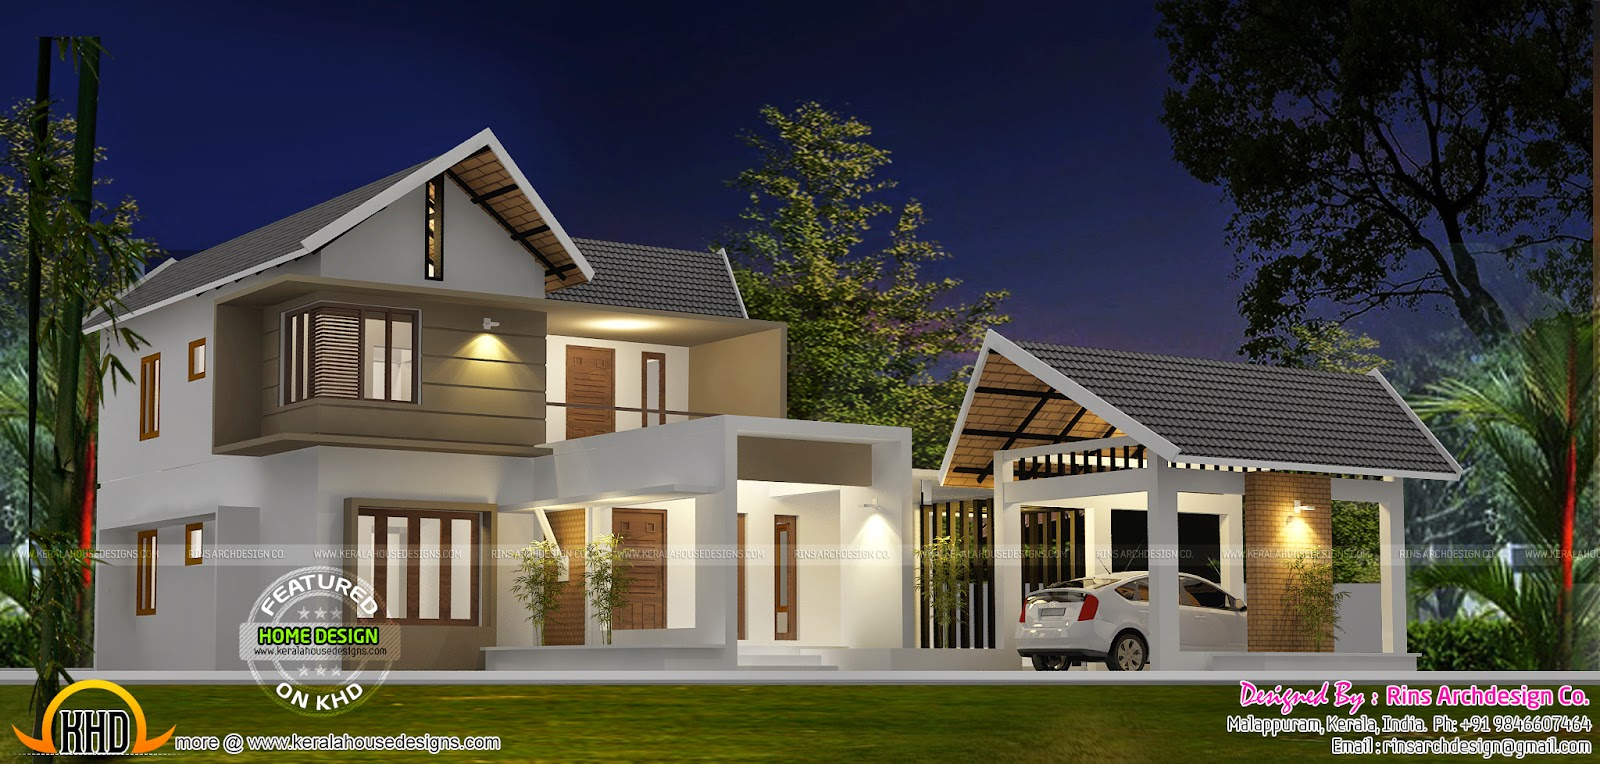 separate garage house plan kerala home design and floor ForSeparate Garage